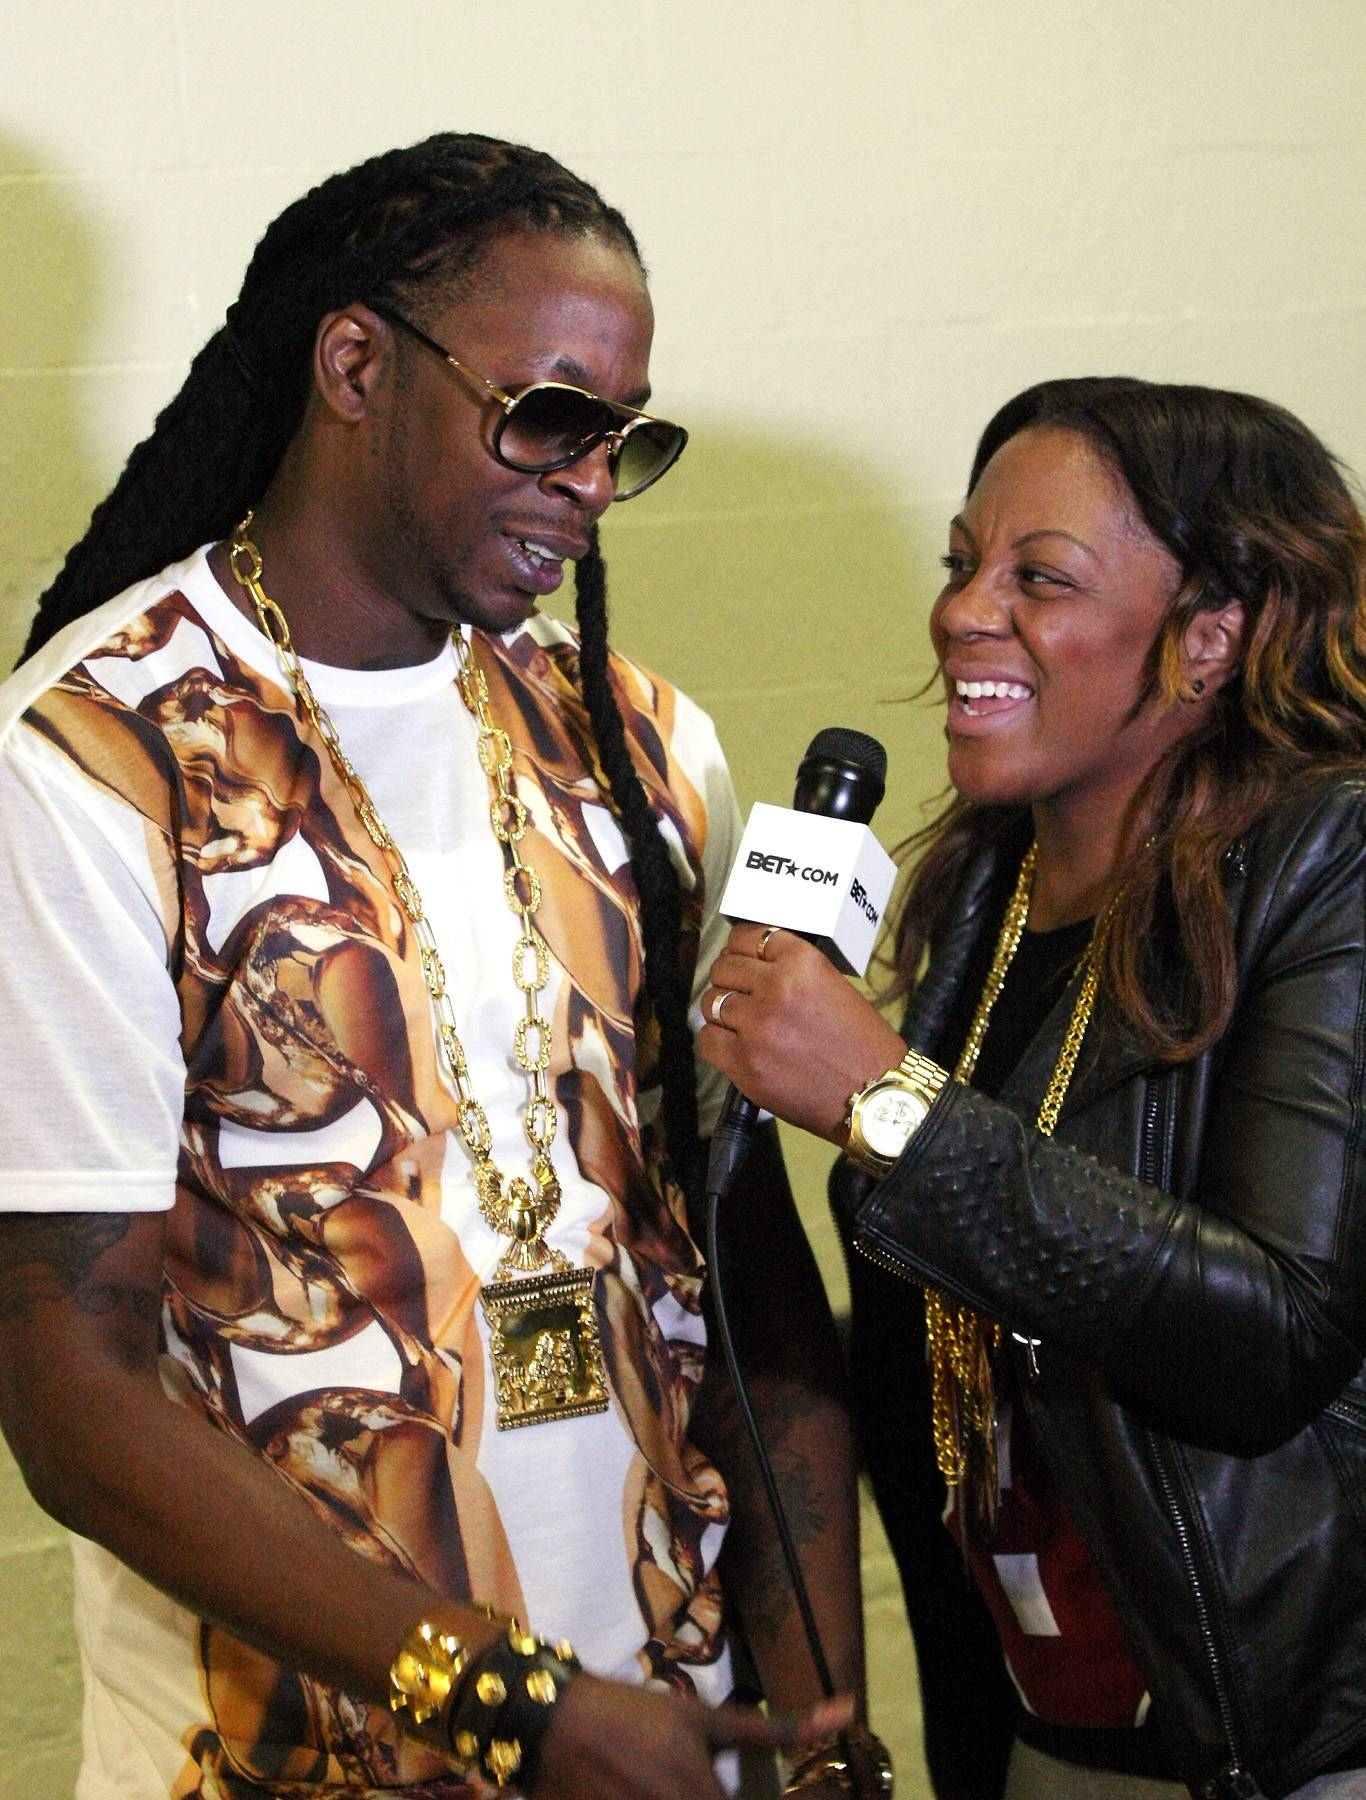 You Know? - The always smooth 2 Chainz gets a last laugh before he leaves 106 Backstage.(Photo: Bennett Raglin/BET/Getty Images for BET)